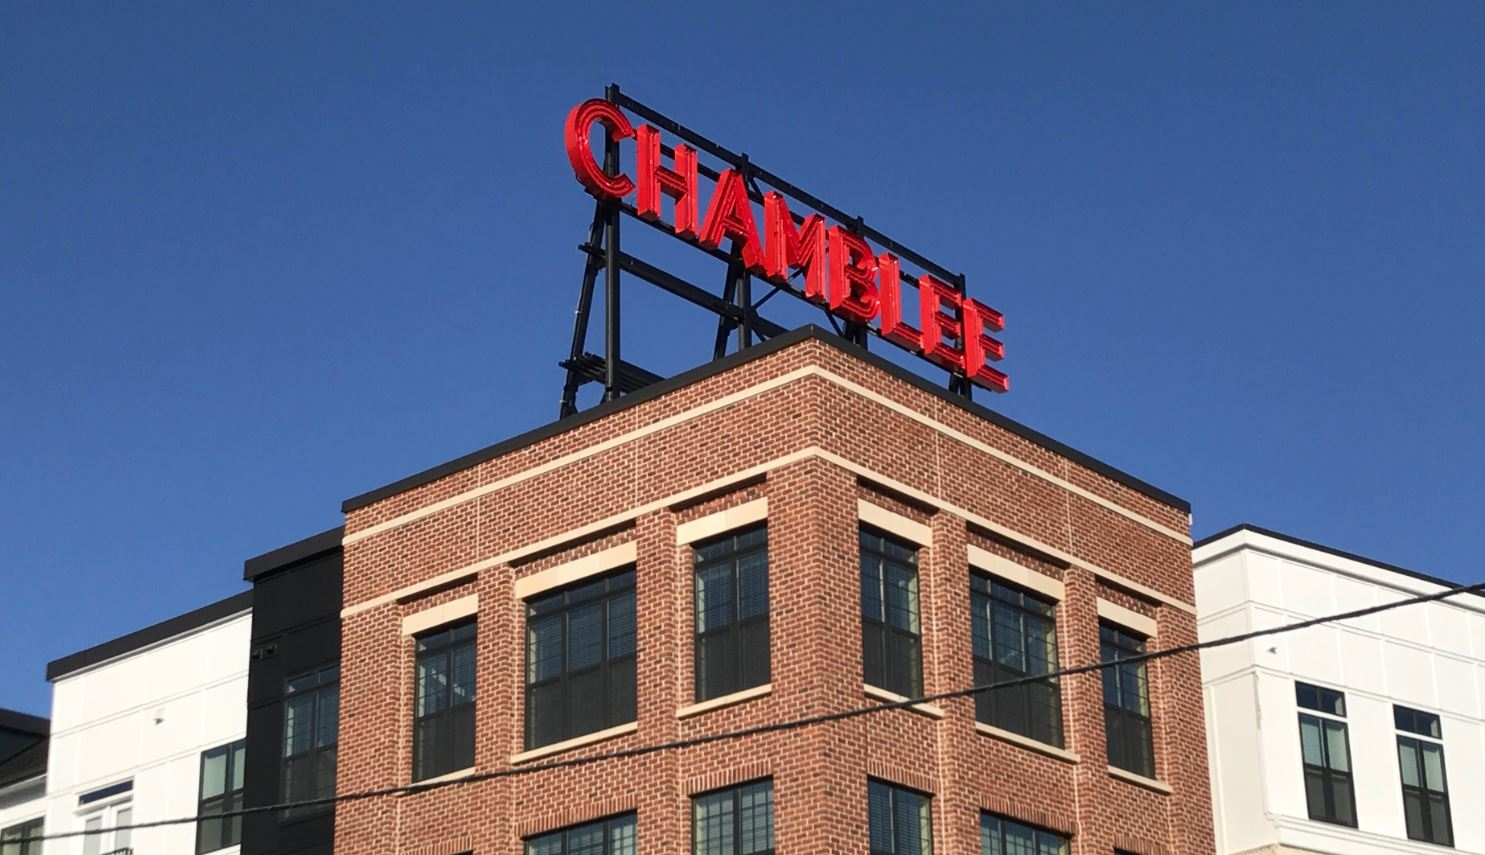 """A lighted red sign atop the apartment building that says """"CHAMBLEE."""""""